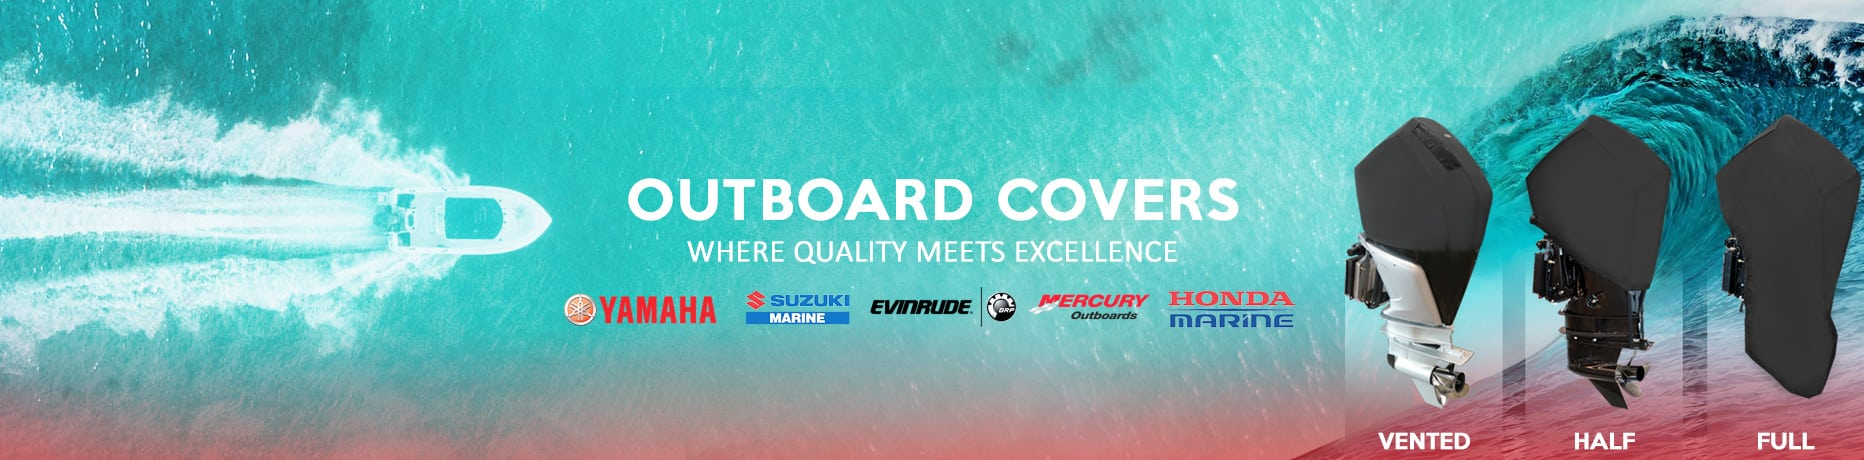 outboard-covers